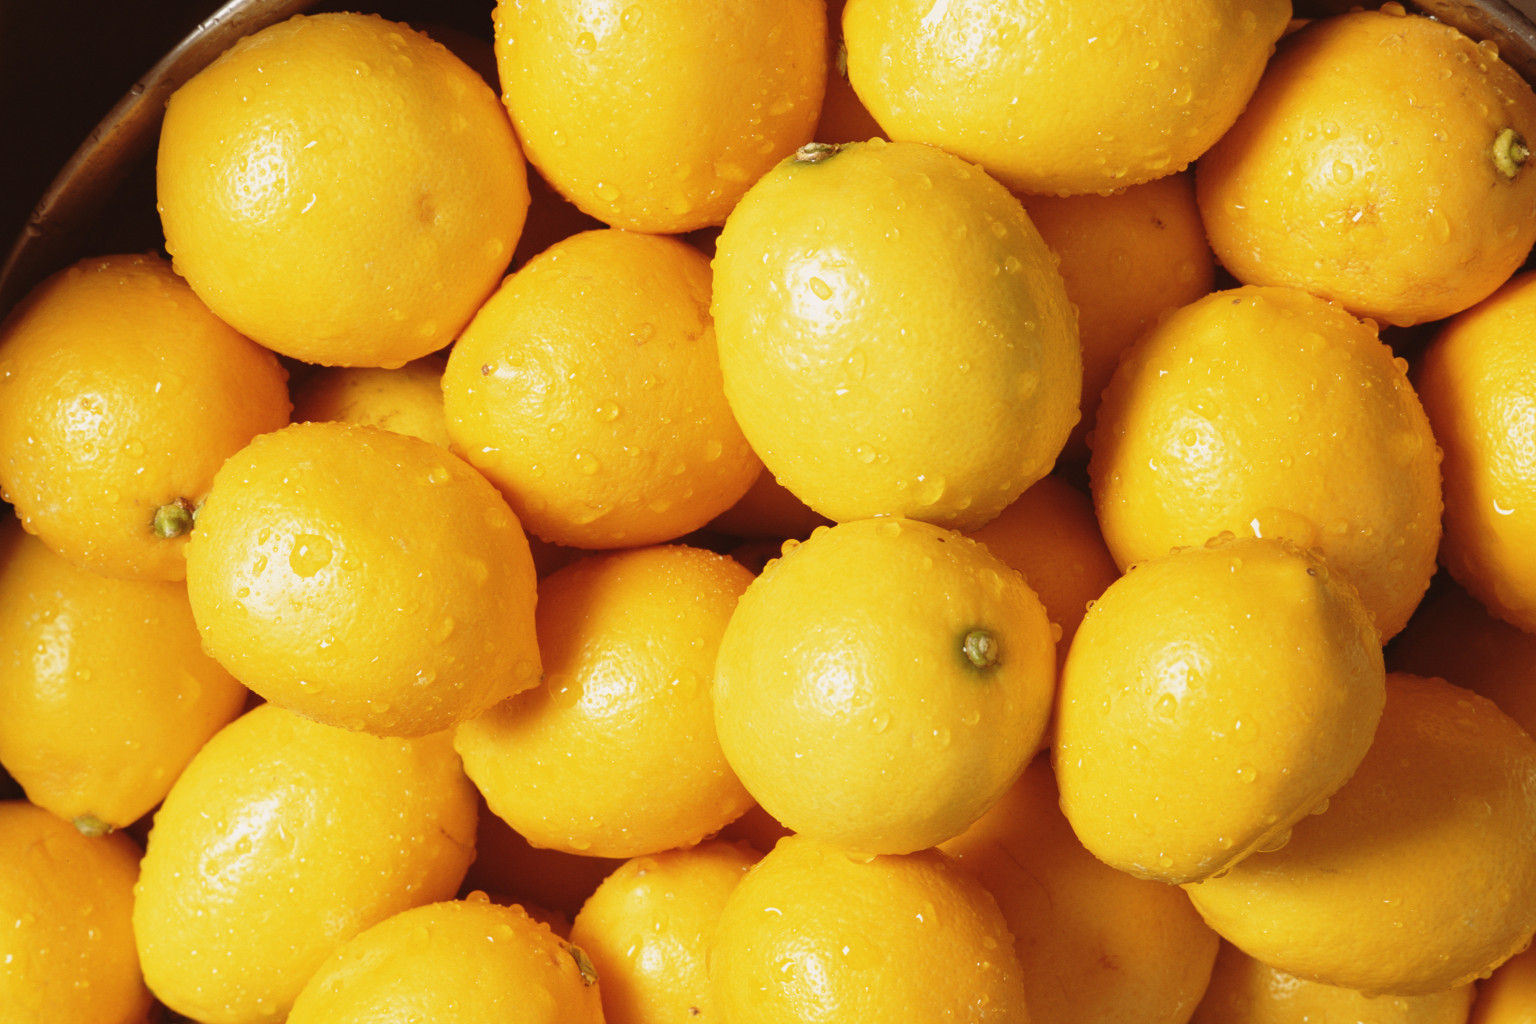 9 Awesome Facts About Lemons You Should Know | HuffPost